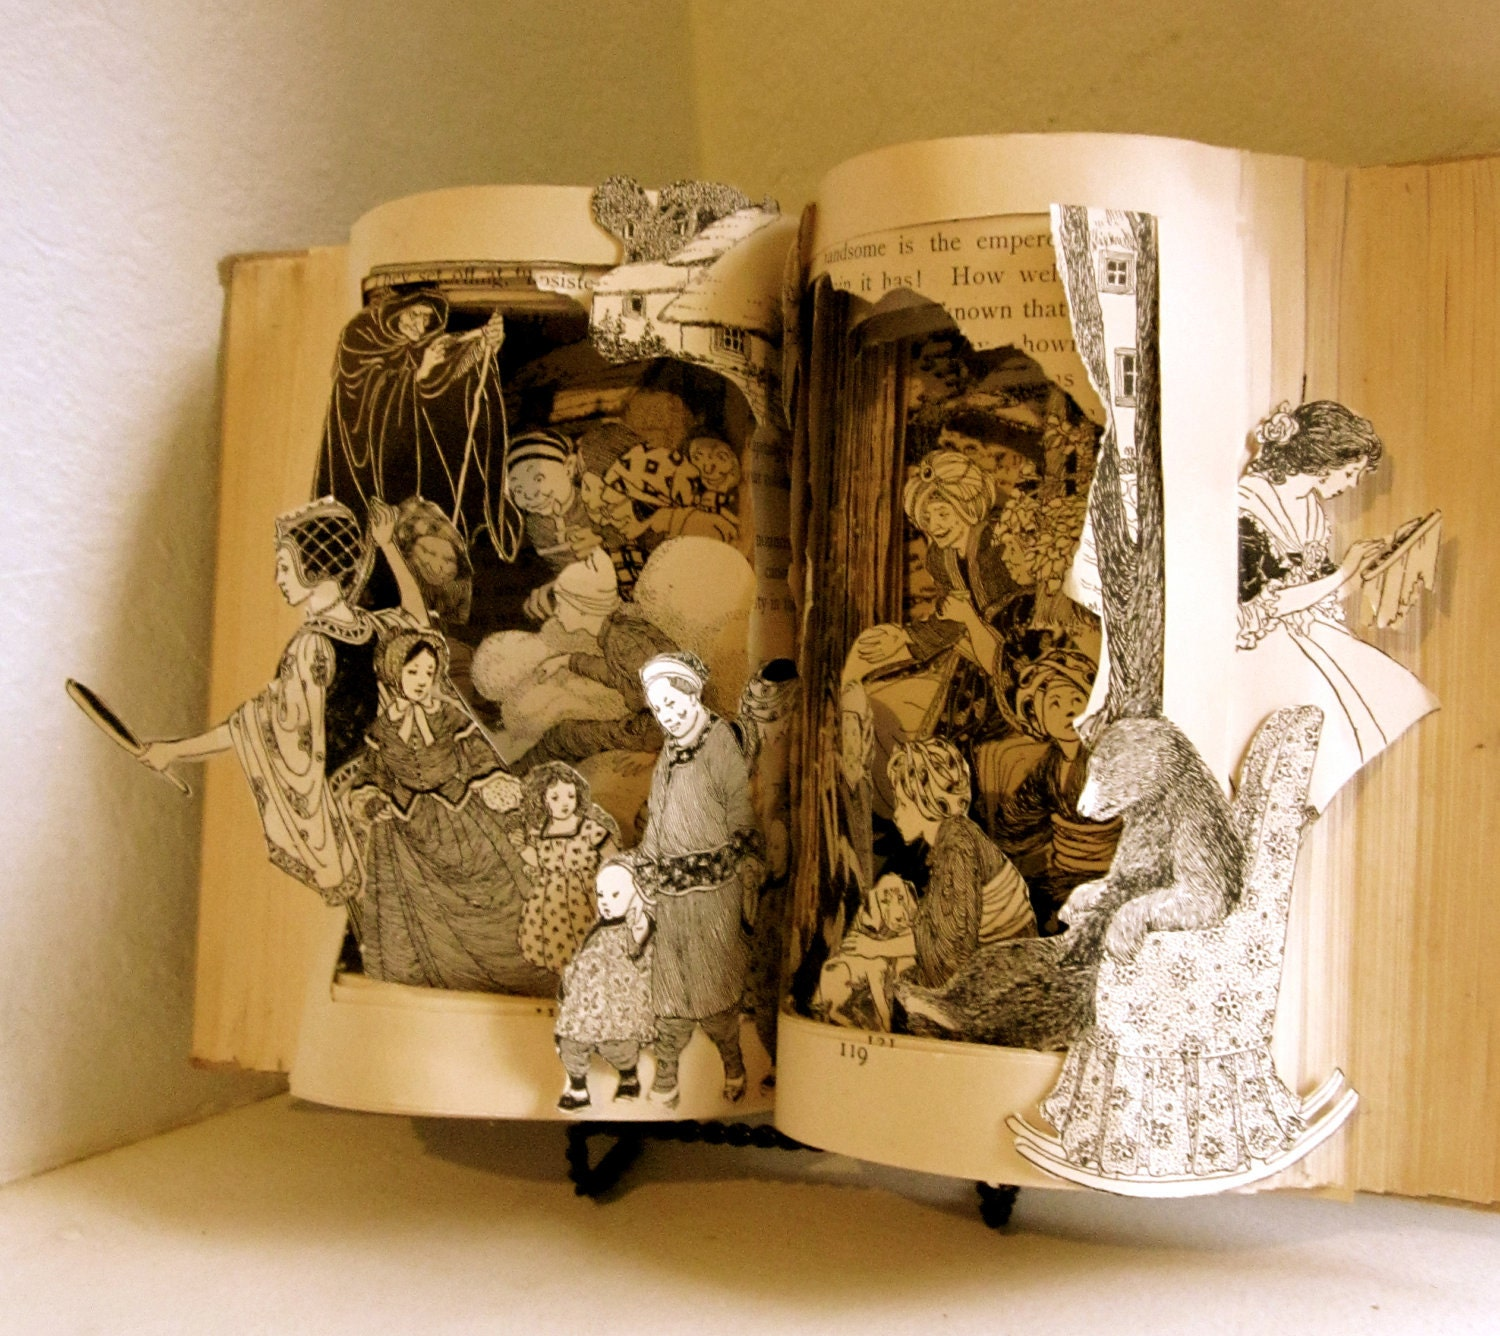 Fairy tale an altered book by raidersofthelostart on etsy for 3d sculpture artists